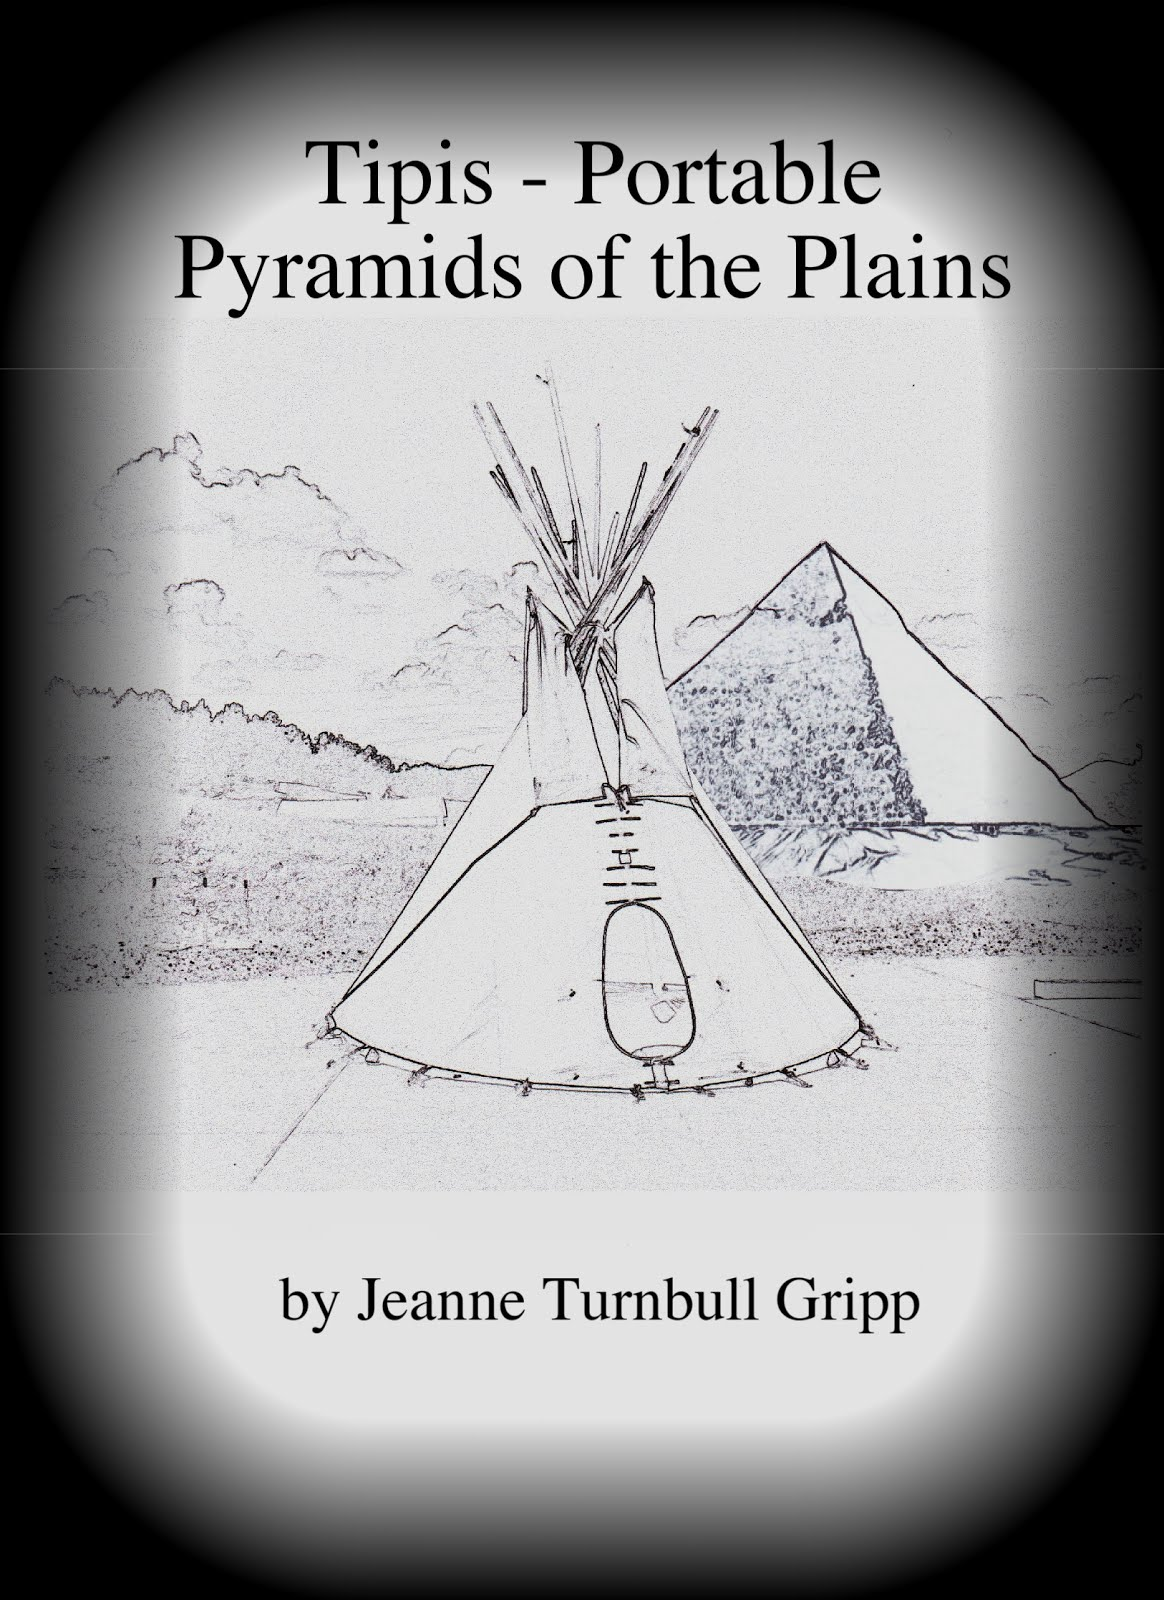 Tipis- Portable Pyramids of the Plains